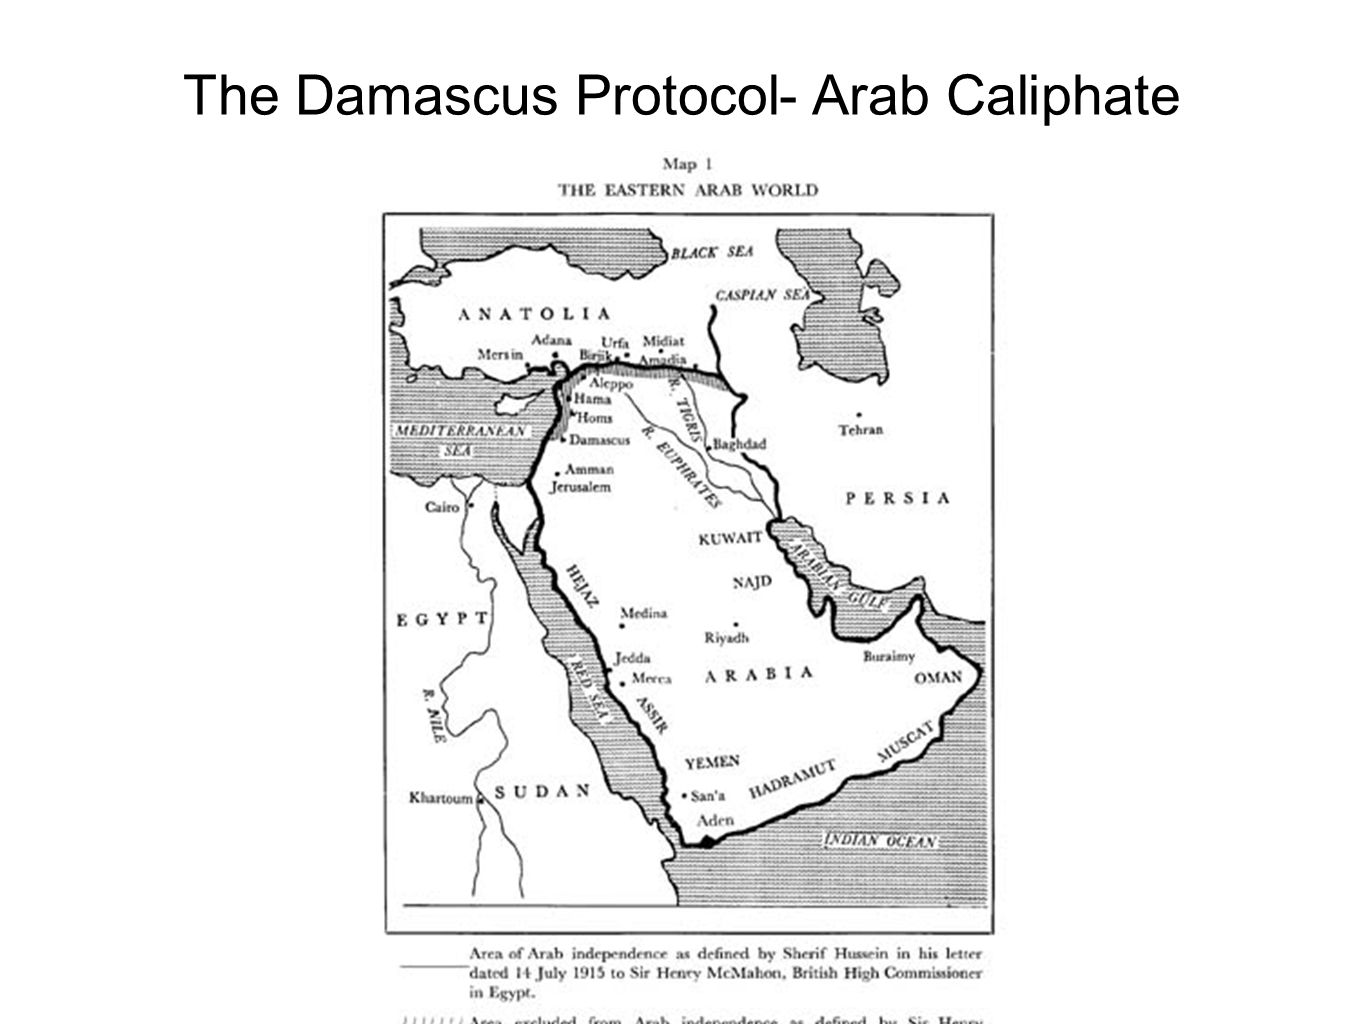 The Damascus Protocol- Arab Caliphate